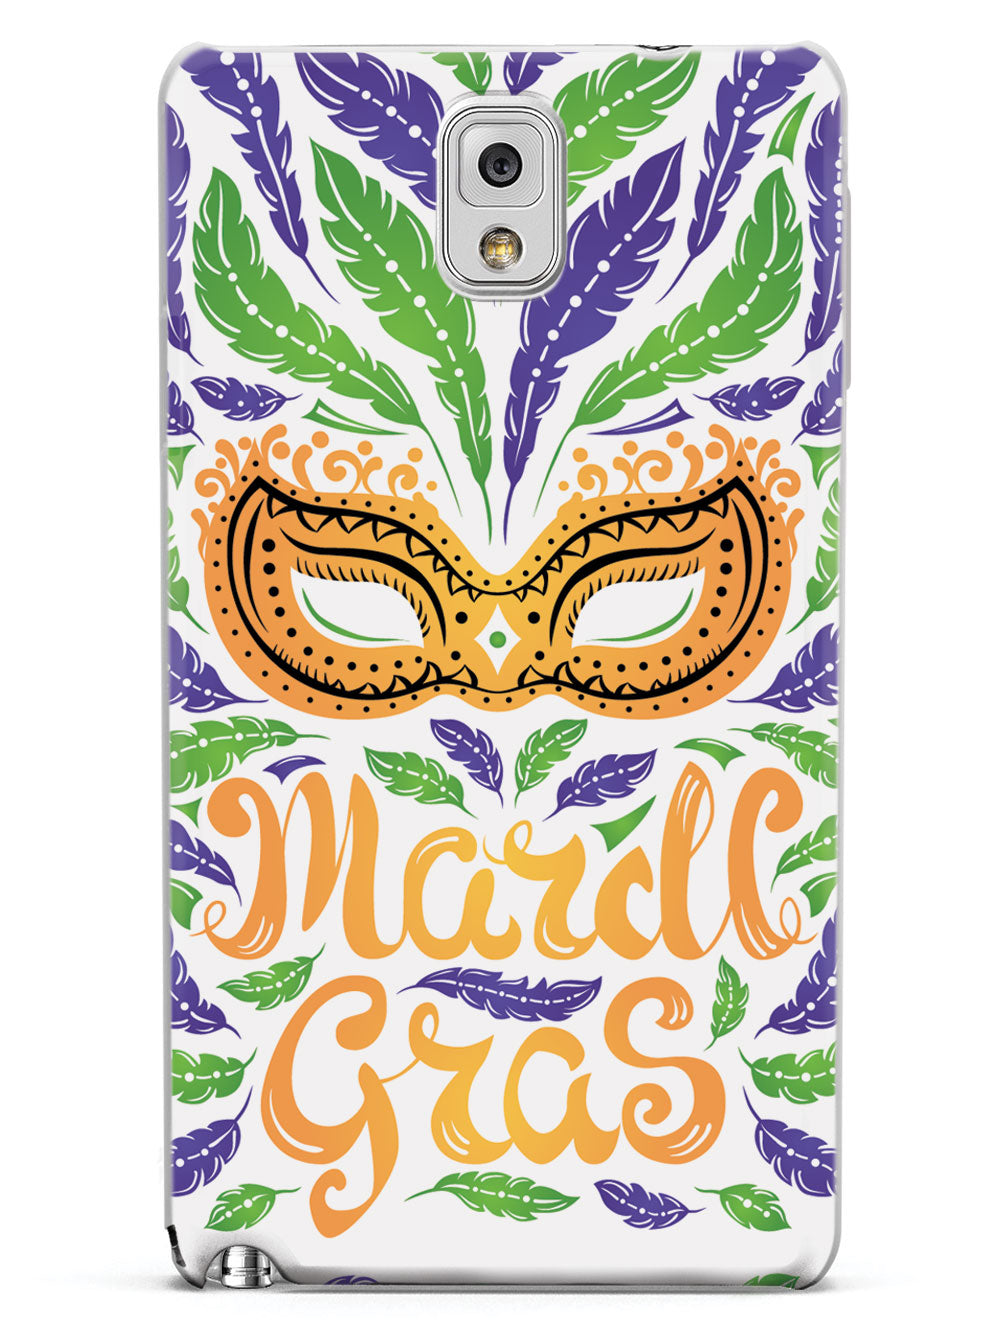 Mardi Gras Mask - White Case